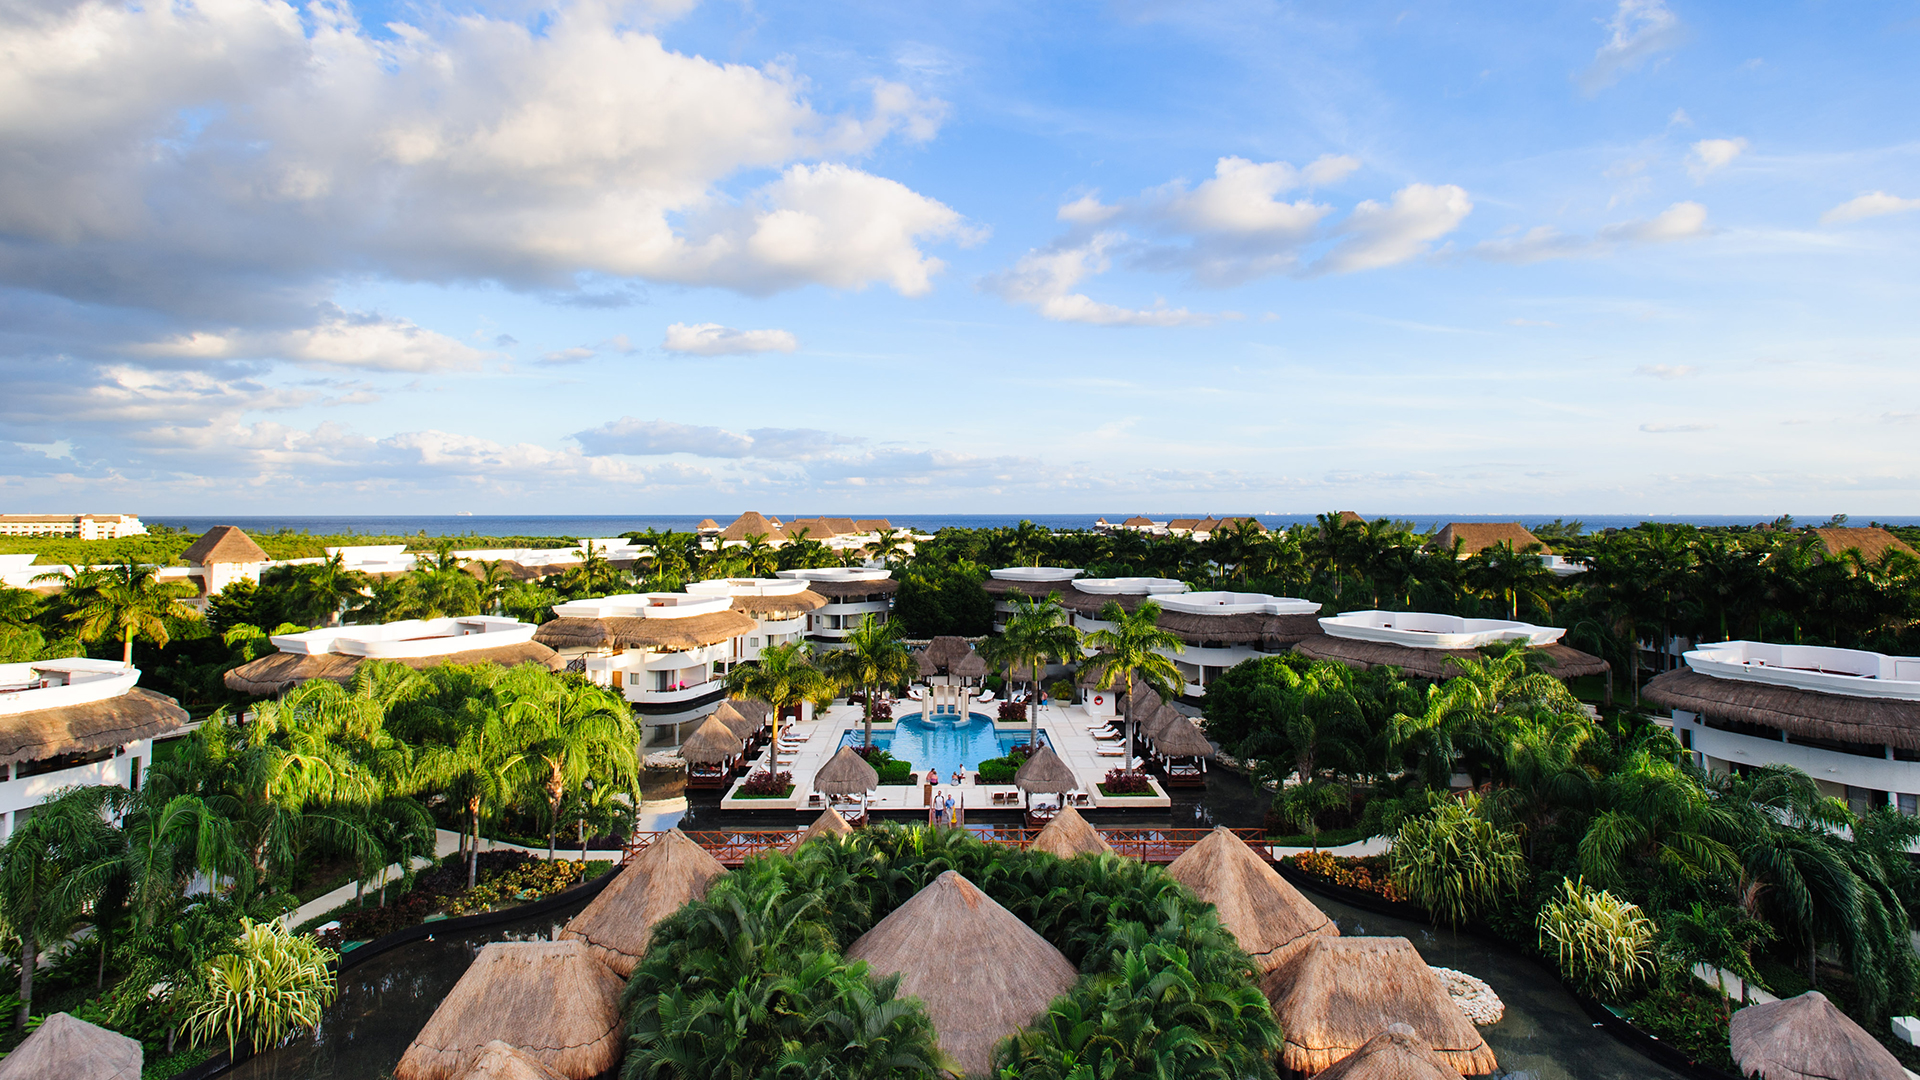 royal-holiday-hotel-resort-panorama-grand-riviera-princess-mexico-quintana-roo-riviera-maya-playa-de-carmen